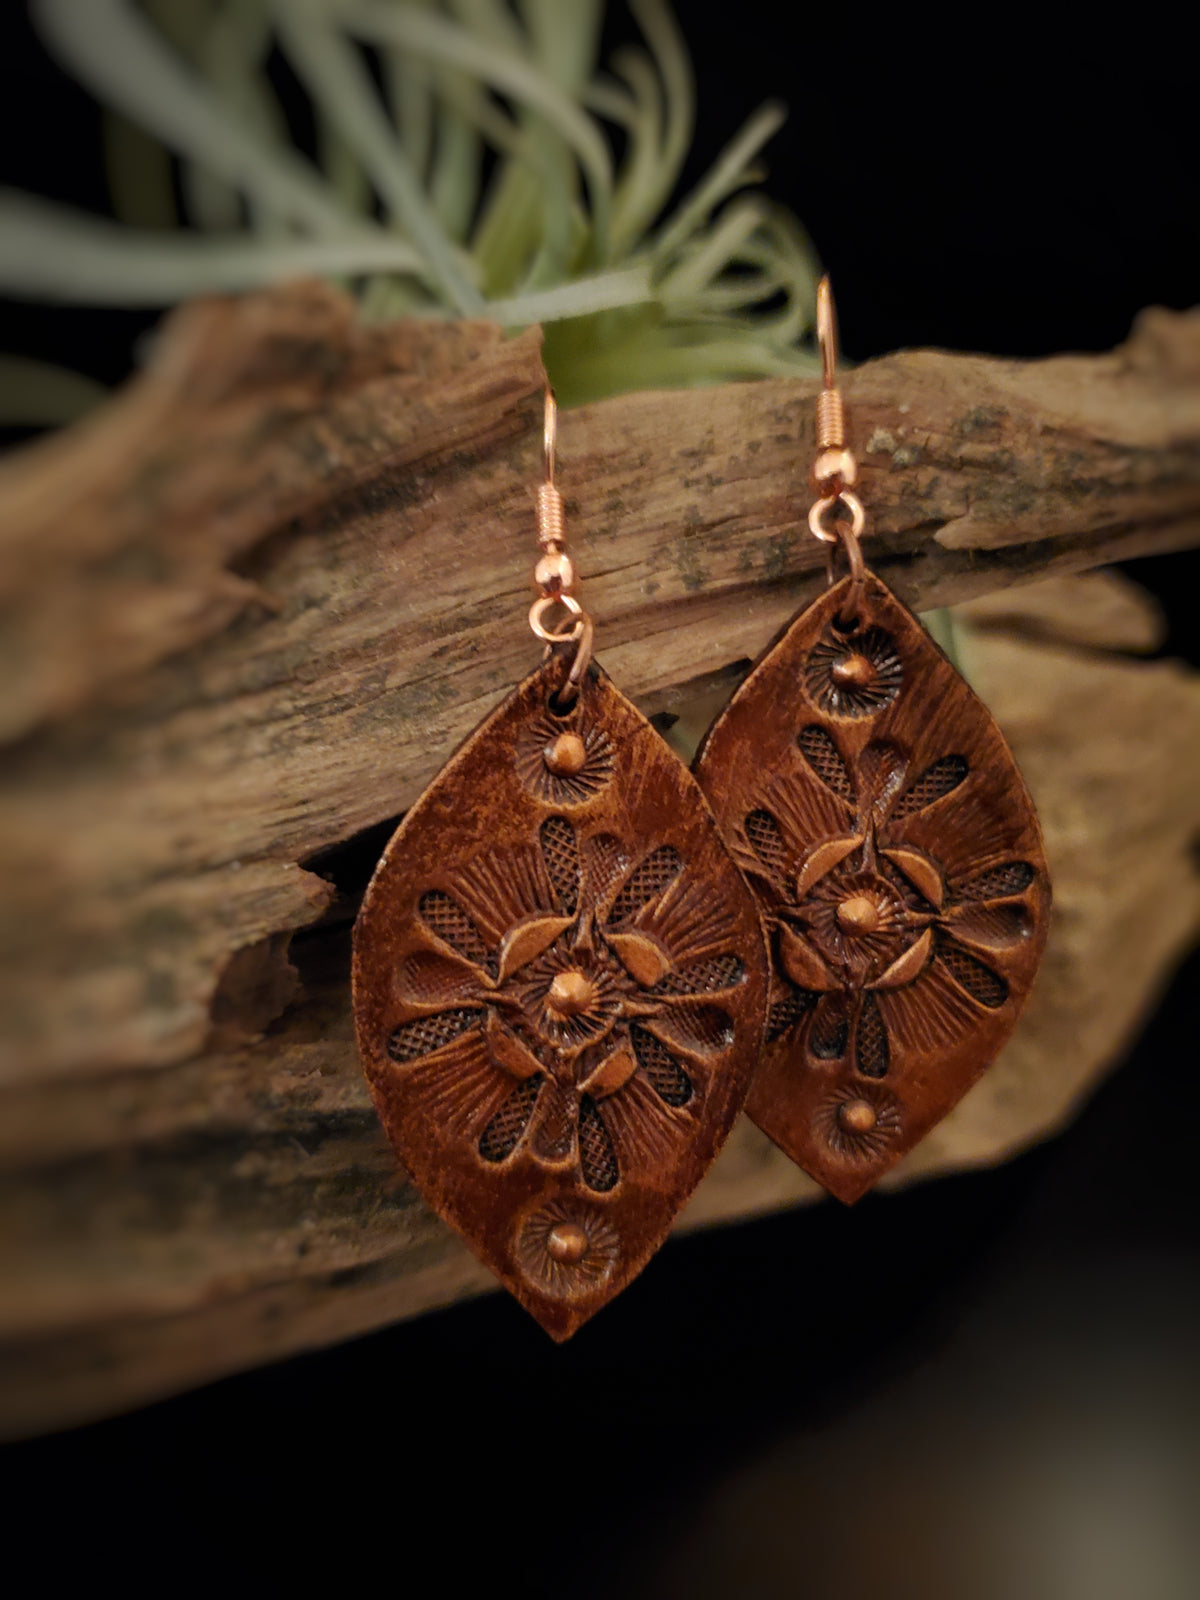 Hand Stamped and Painted Leaf Shaped Earrings by Selena Doolittle McColley - Jewelry